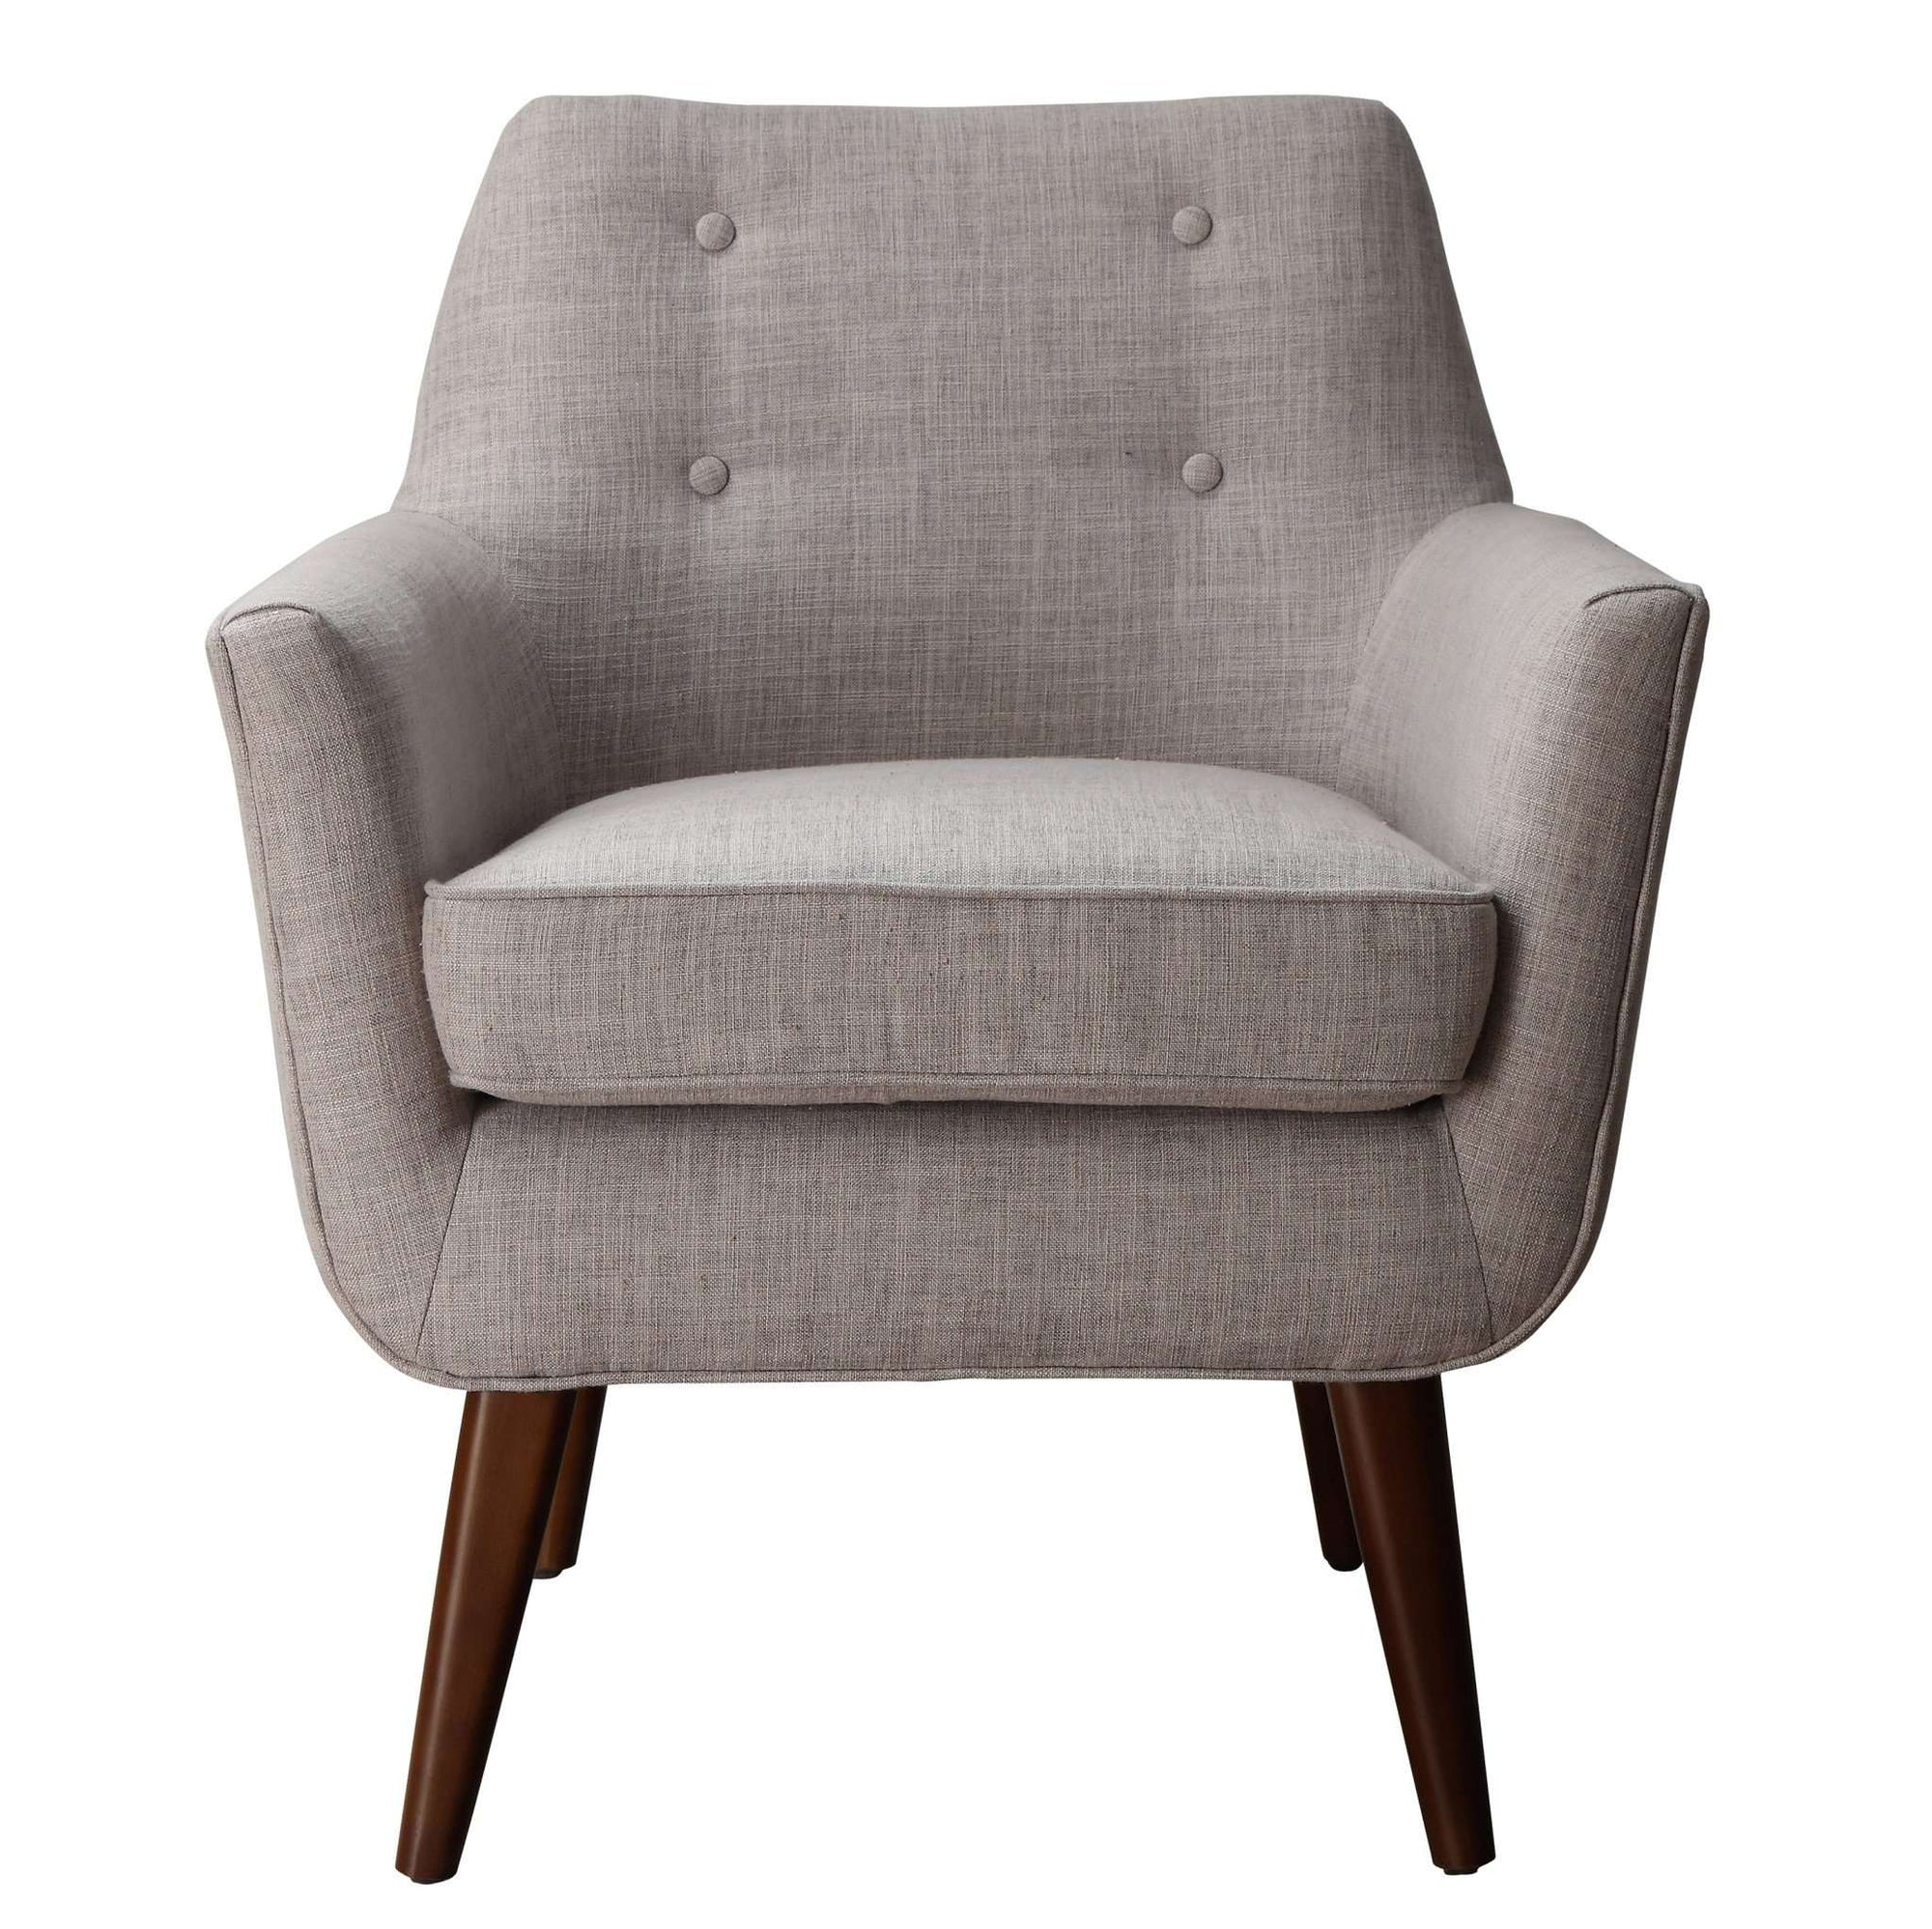 Tov-Clyde Linen Chair-Lounge Chair-MODTEMPO